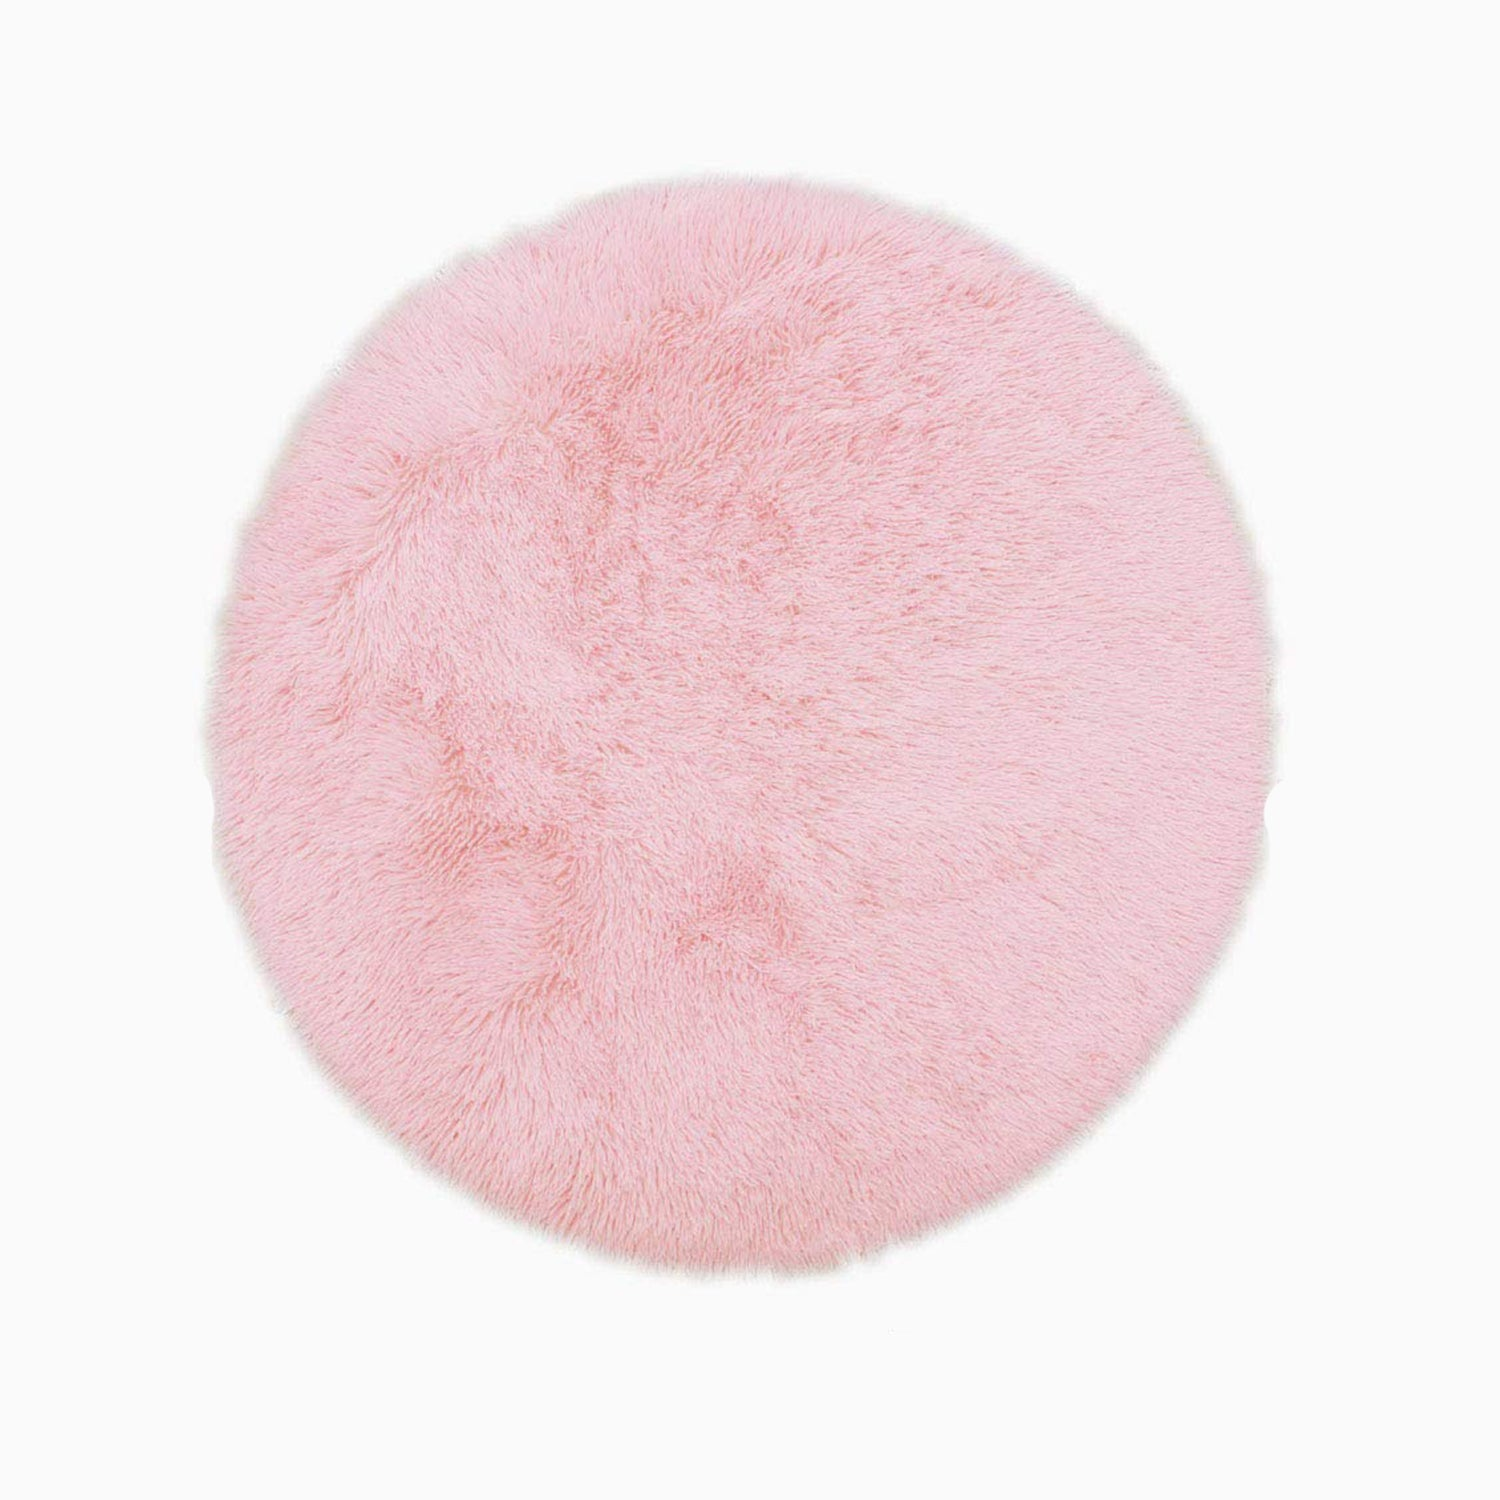 Lecluse Rugs Round Shaggy Floor Carpets Extra Large Lounge Couch Non Slip Area